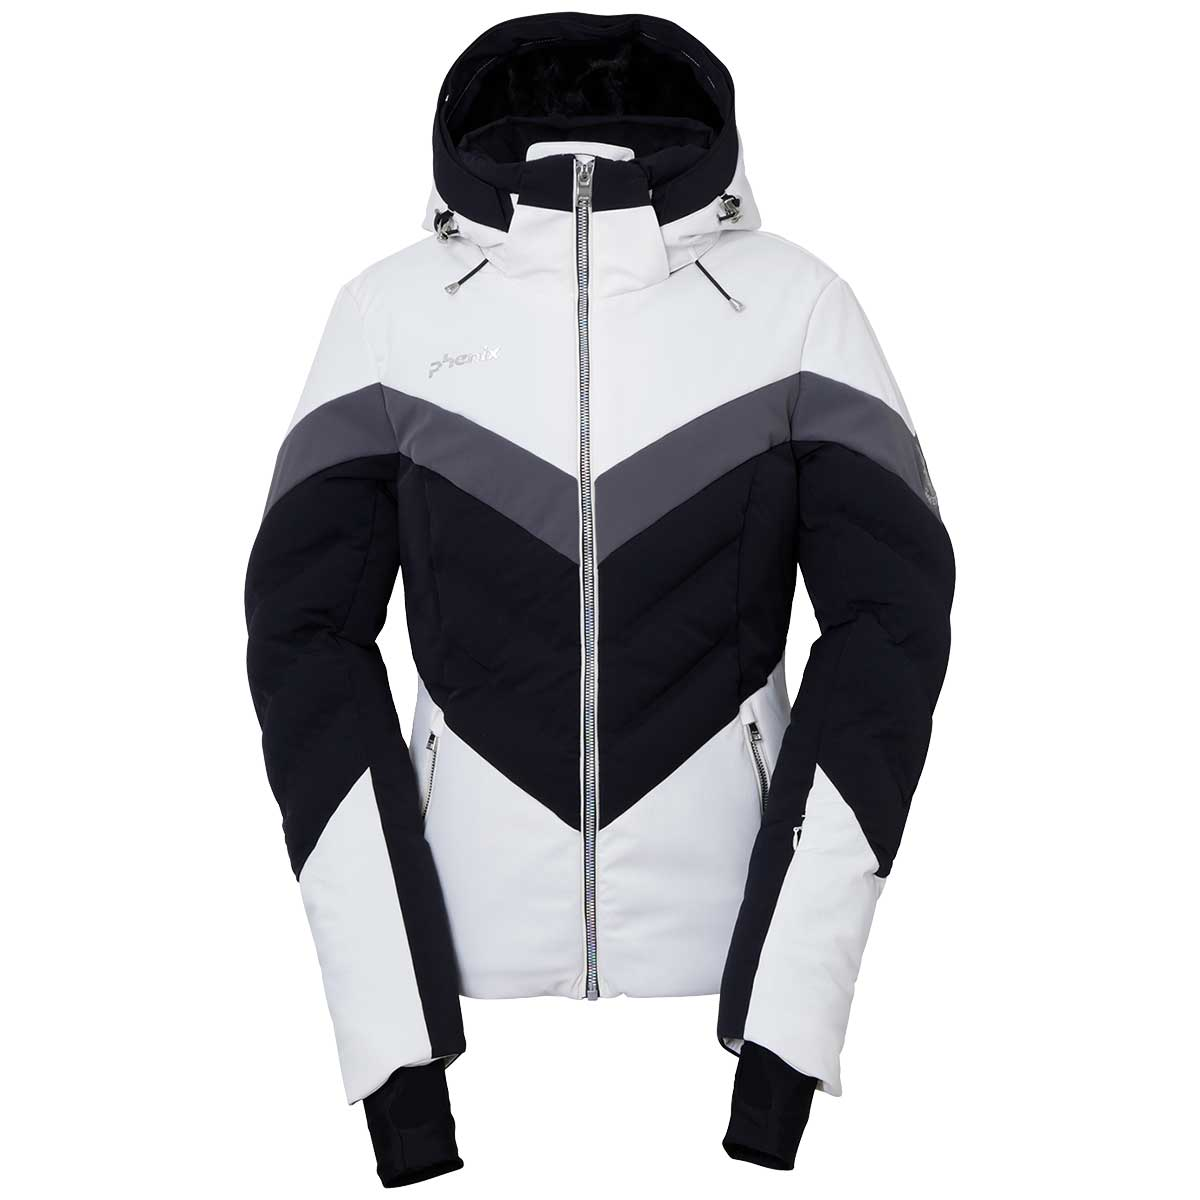 Phenix women's Emerald Hybrid Down Jacket in Off White and Black main view